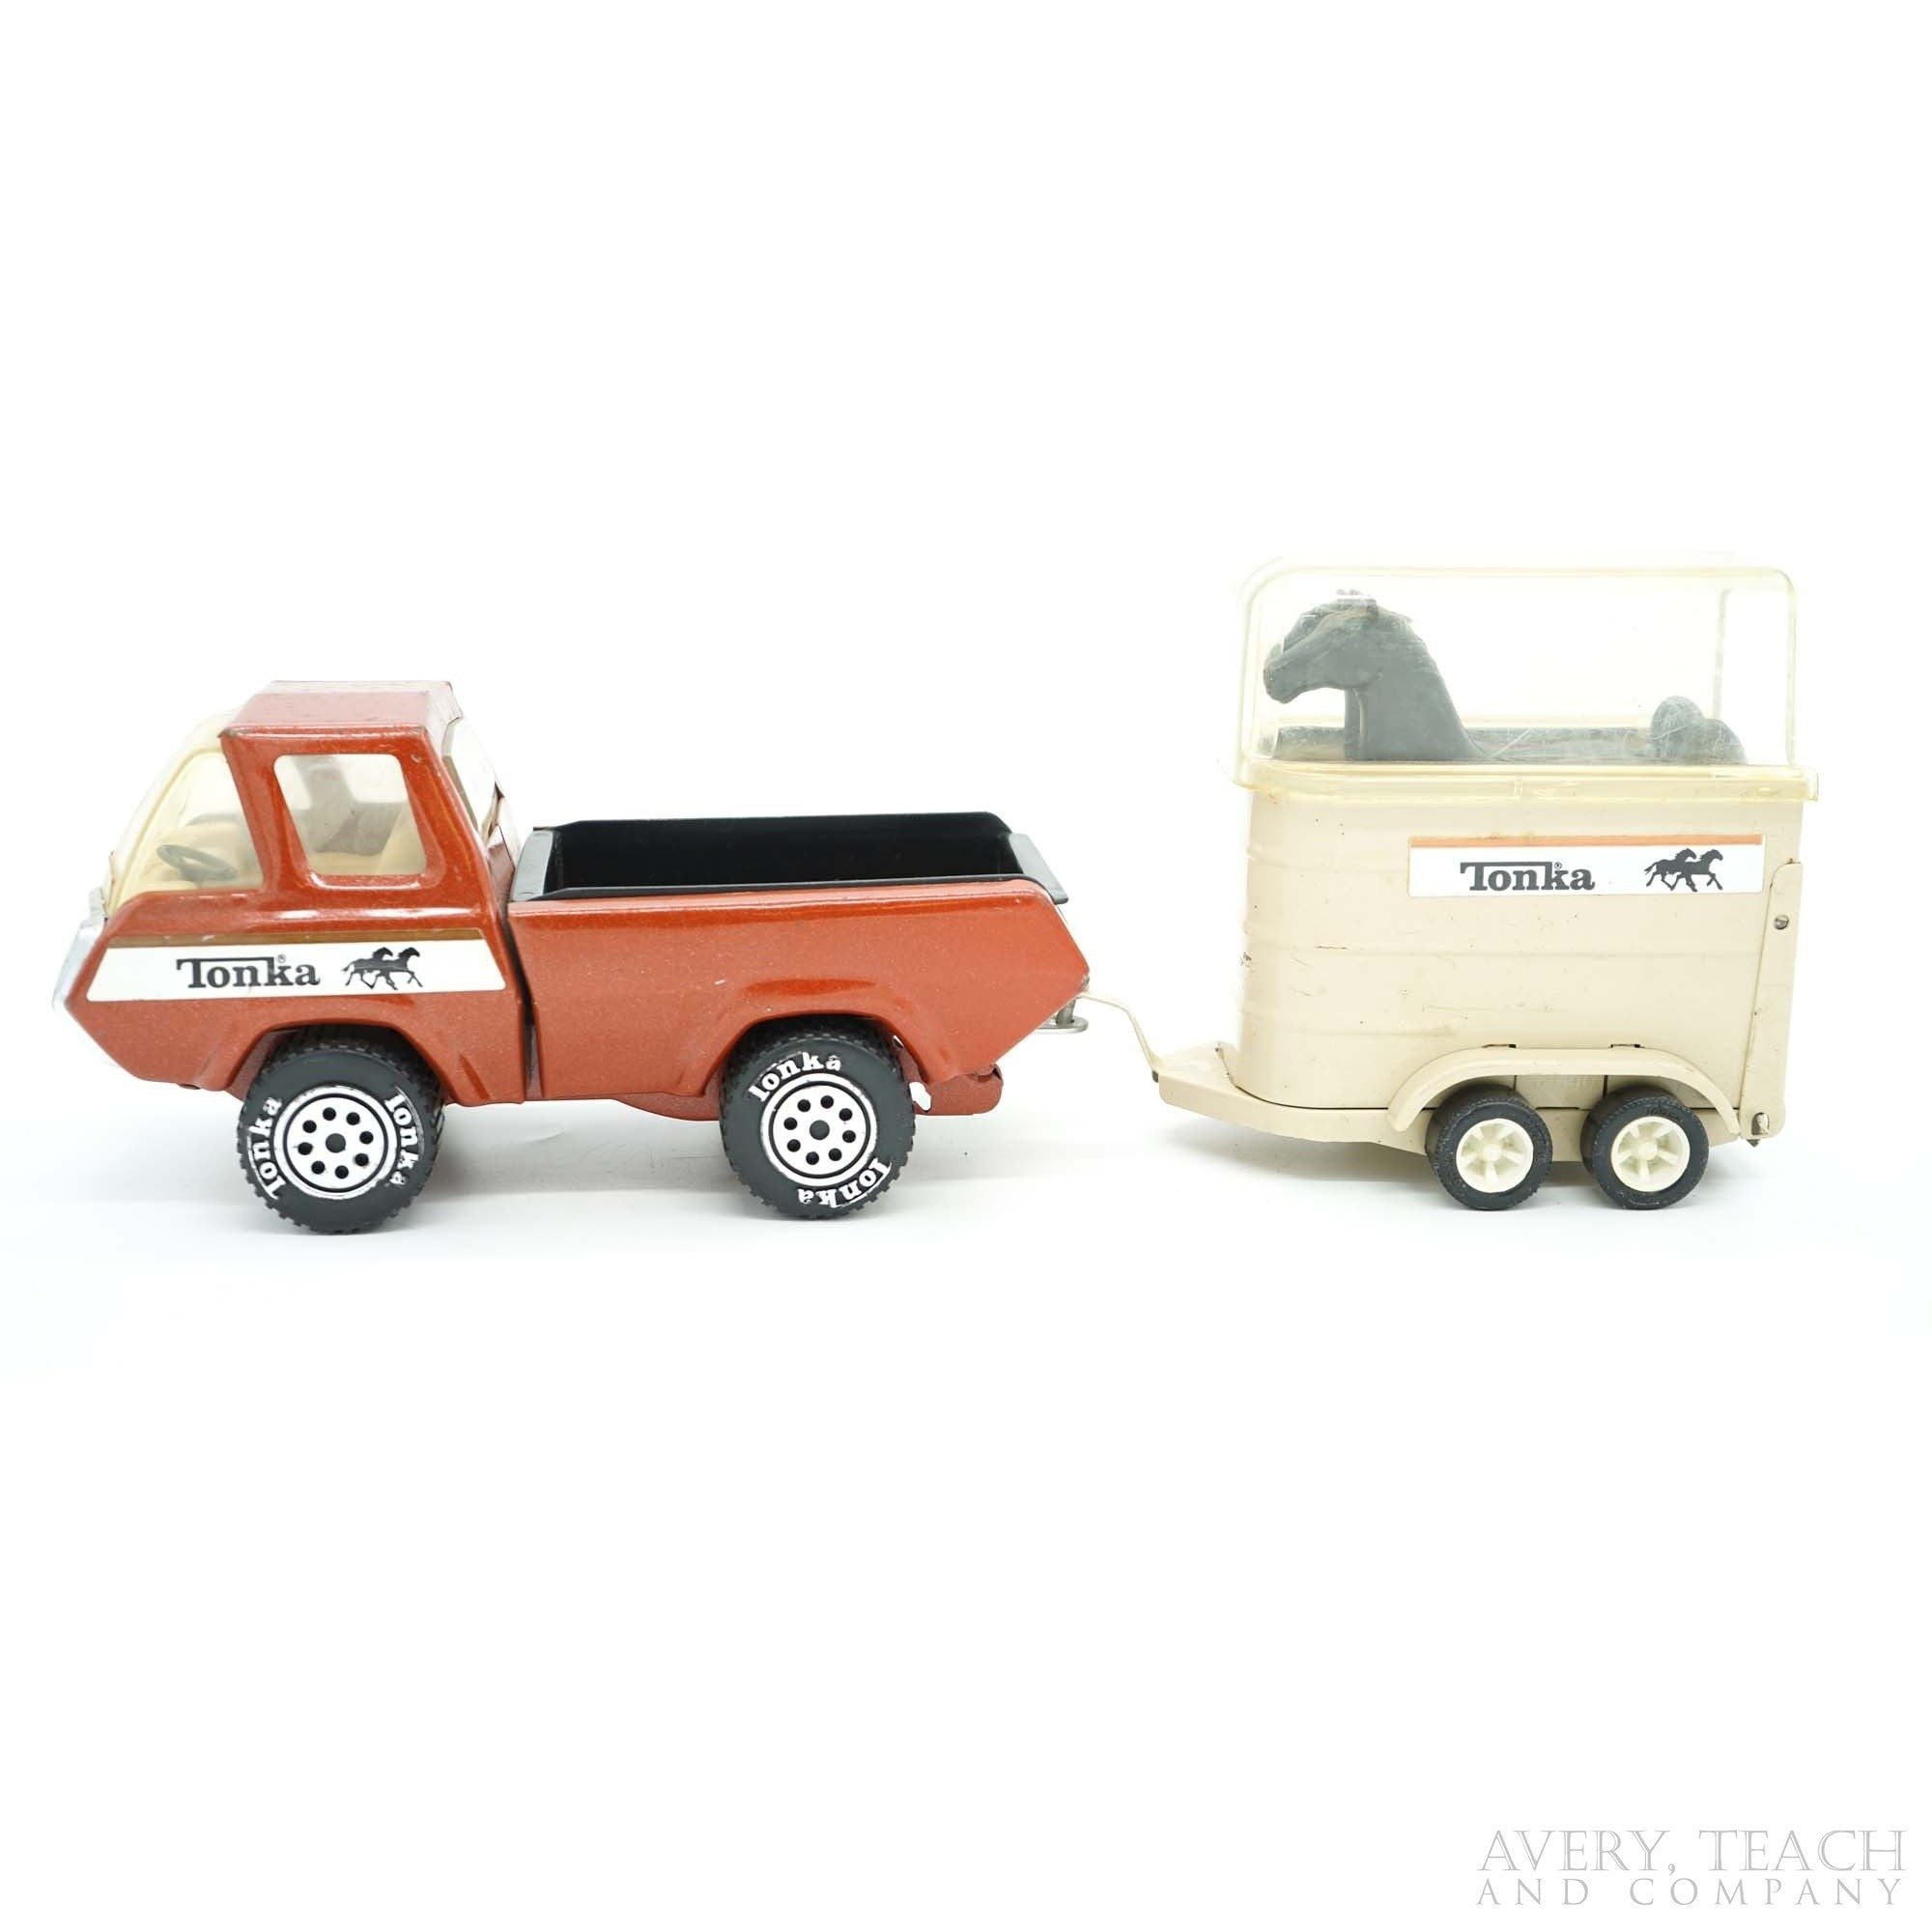 1970's Tonka Truck and Horse Trailer